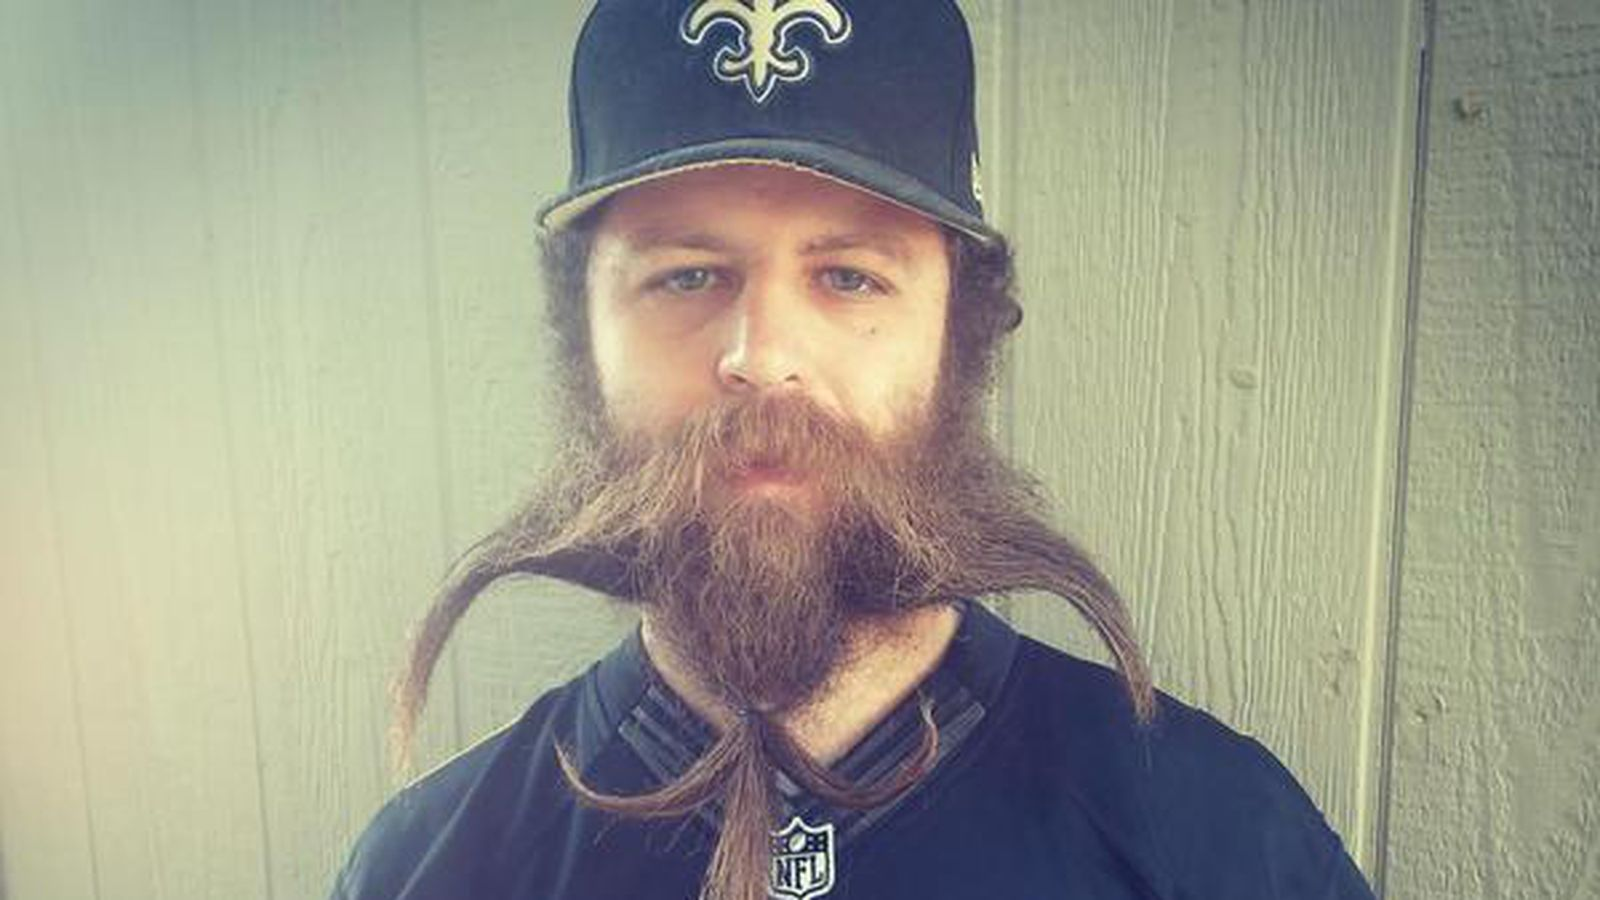 Travis Wood Grows Epic Saints Beard - S̶c̶a̶p̶e̶ ̶G̶o̶a̶t̶'̶s̶ Rob Ryan's Hair